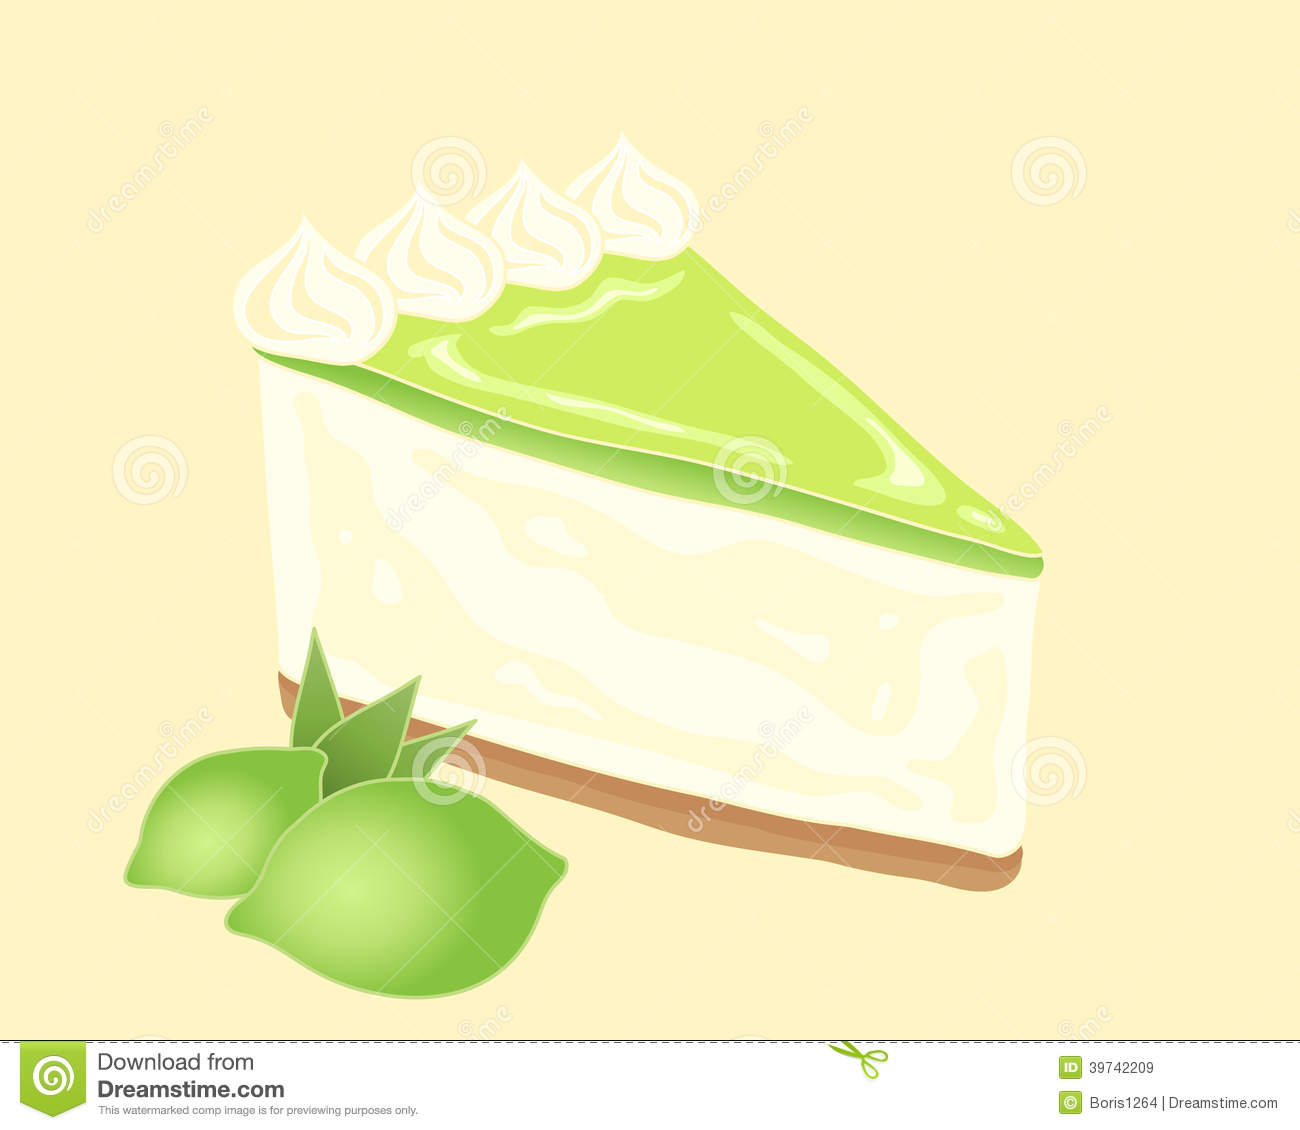 Key lime clipart #2